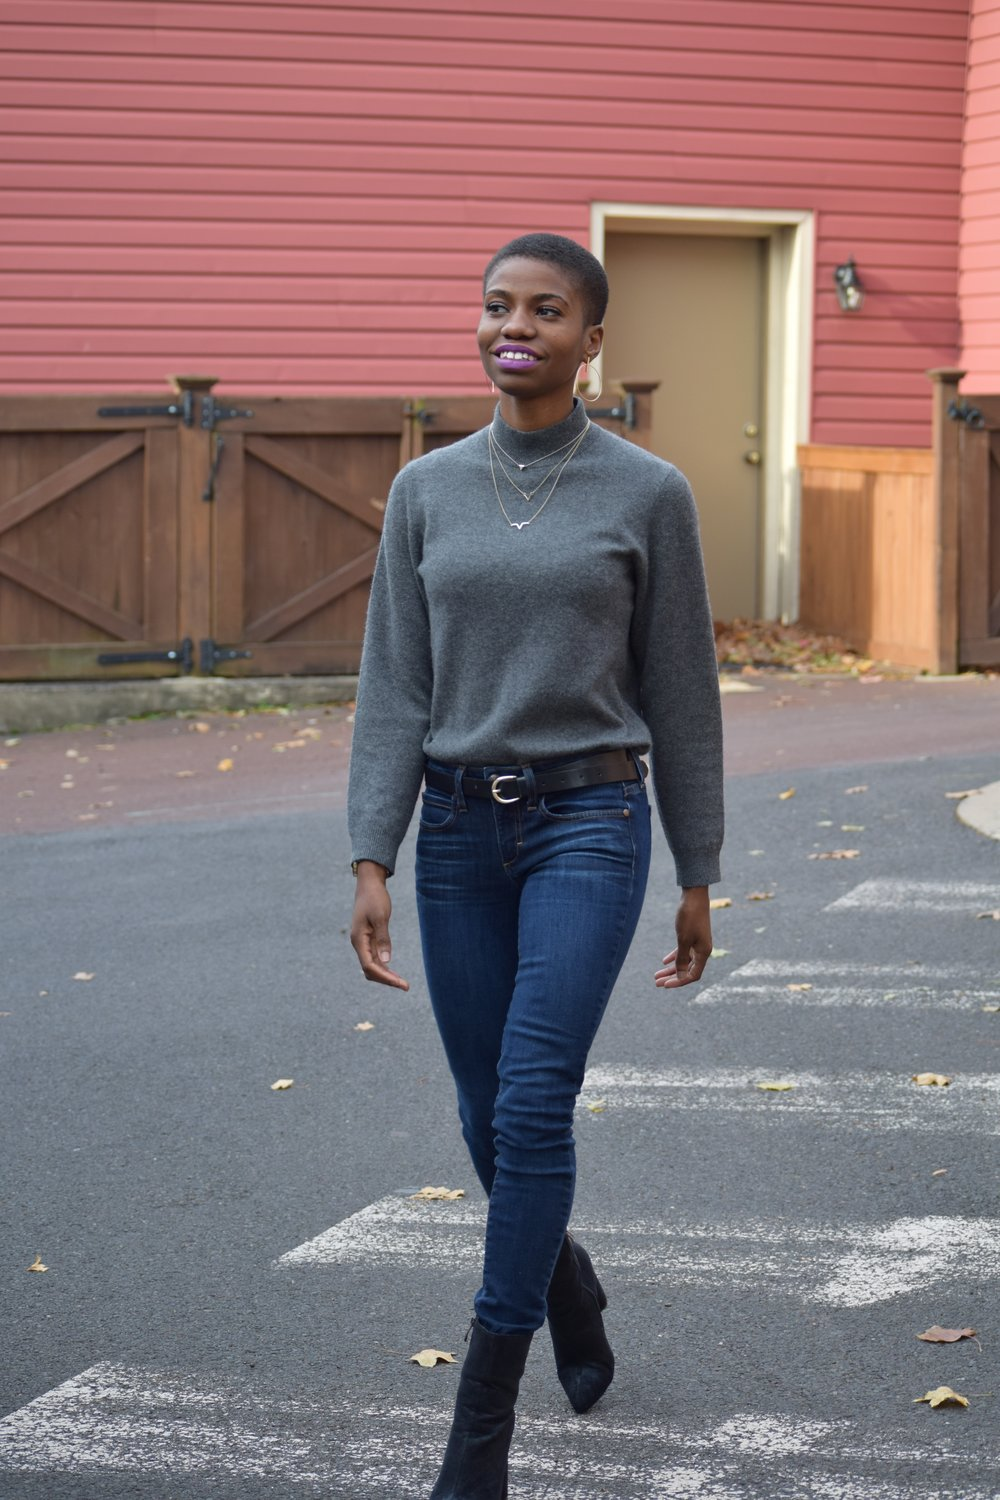 Sweater: Lord and Taylor (Thrifted) from Clothes Mentor Jeans: Bebe (Thrifted) from Clothes Mentor Boots: Cape Robbins (Thrifted) from Plato's Closet